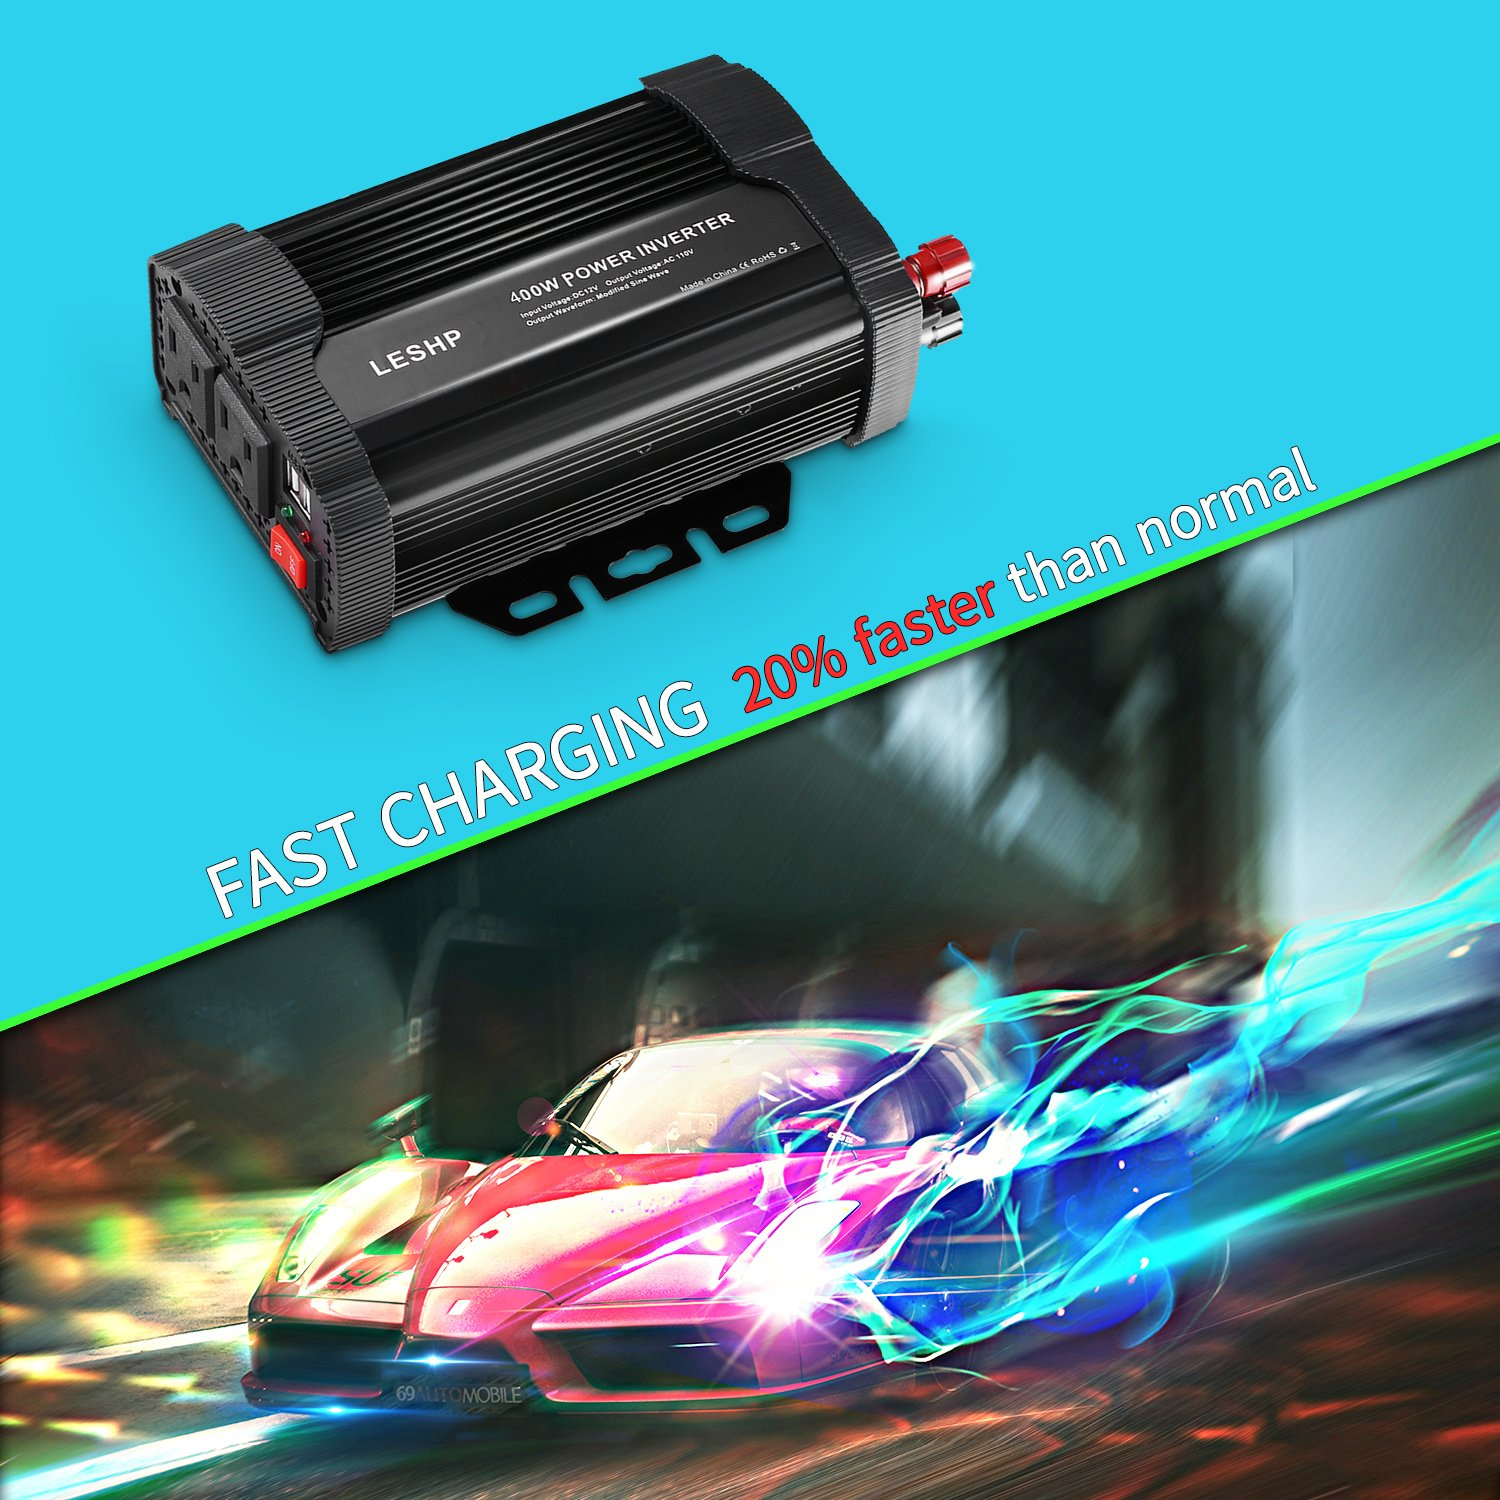 LESHP 400W Power Inverter DC 12V to AC 110V Car Adapter with 4.8A 2 USB Charging Ports by LESHP (Image #10)